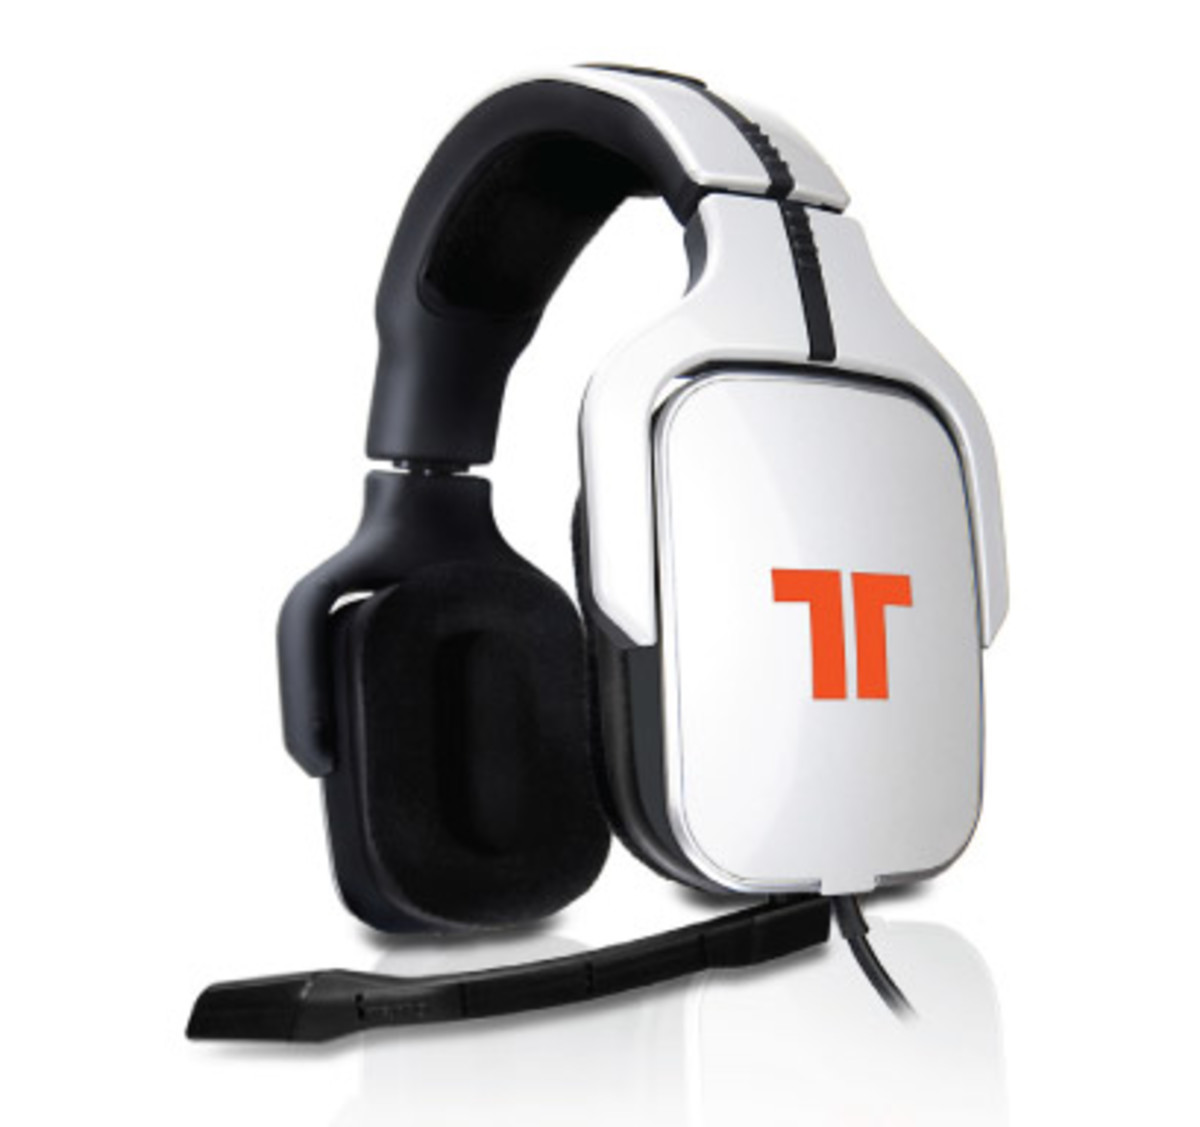 Troubleshooting Tritton AX 720 Problems